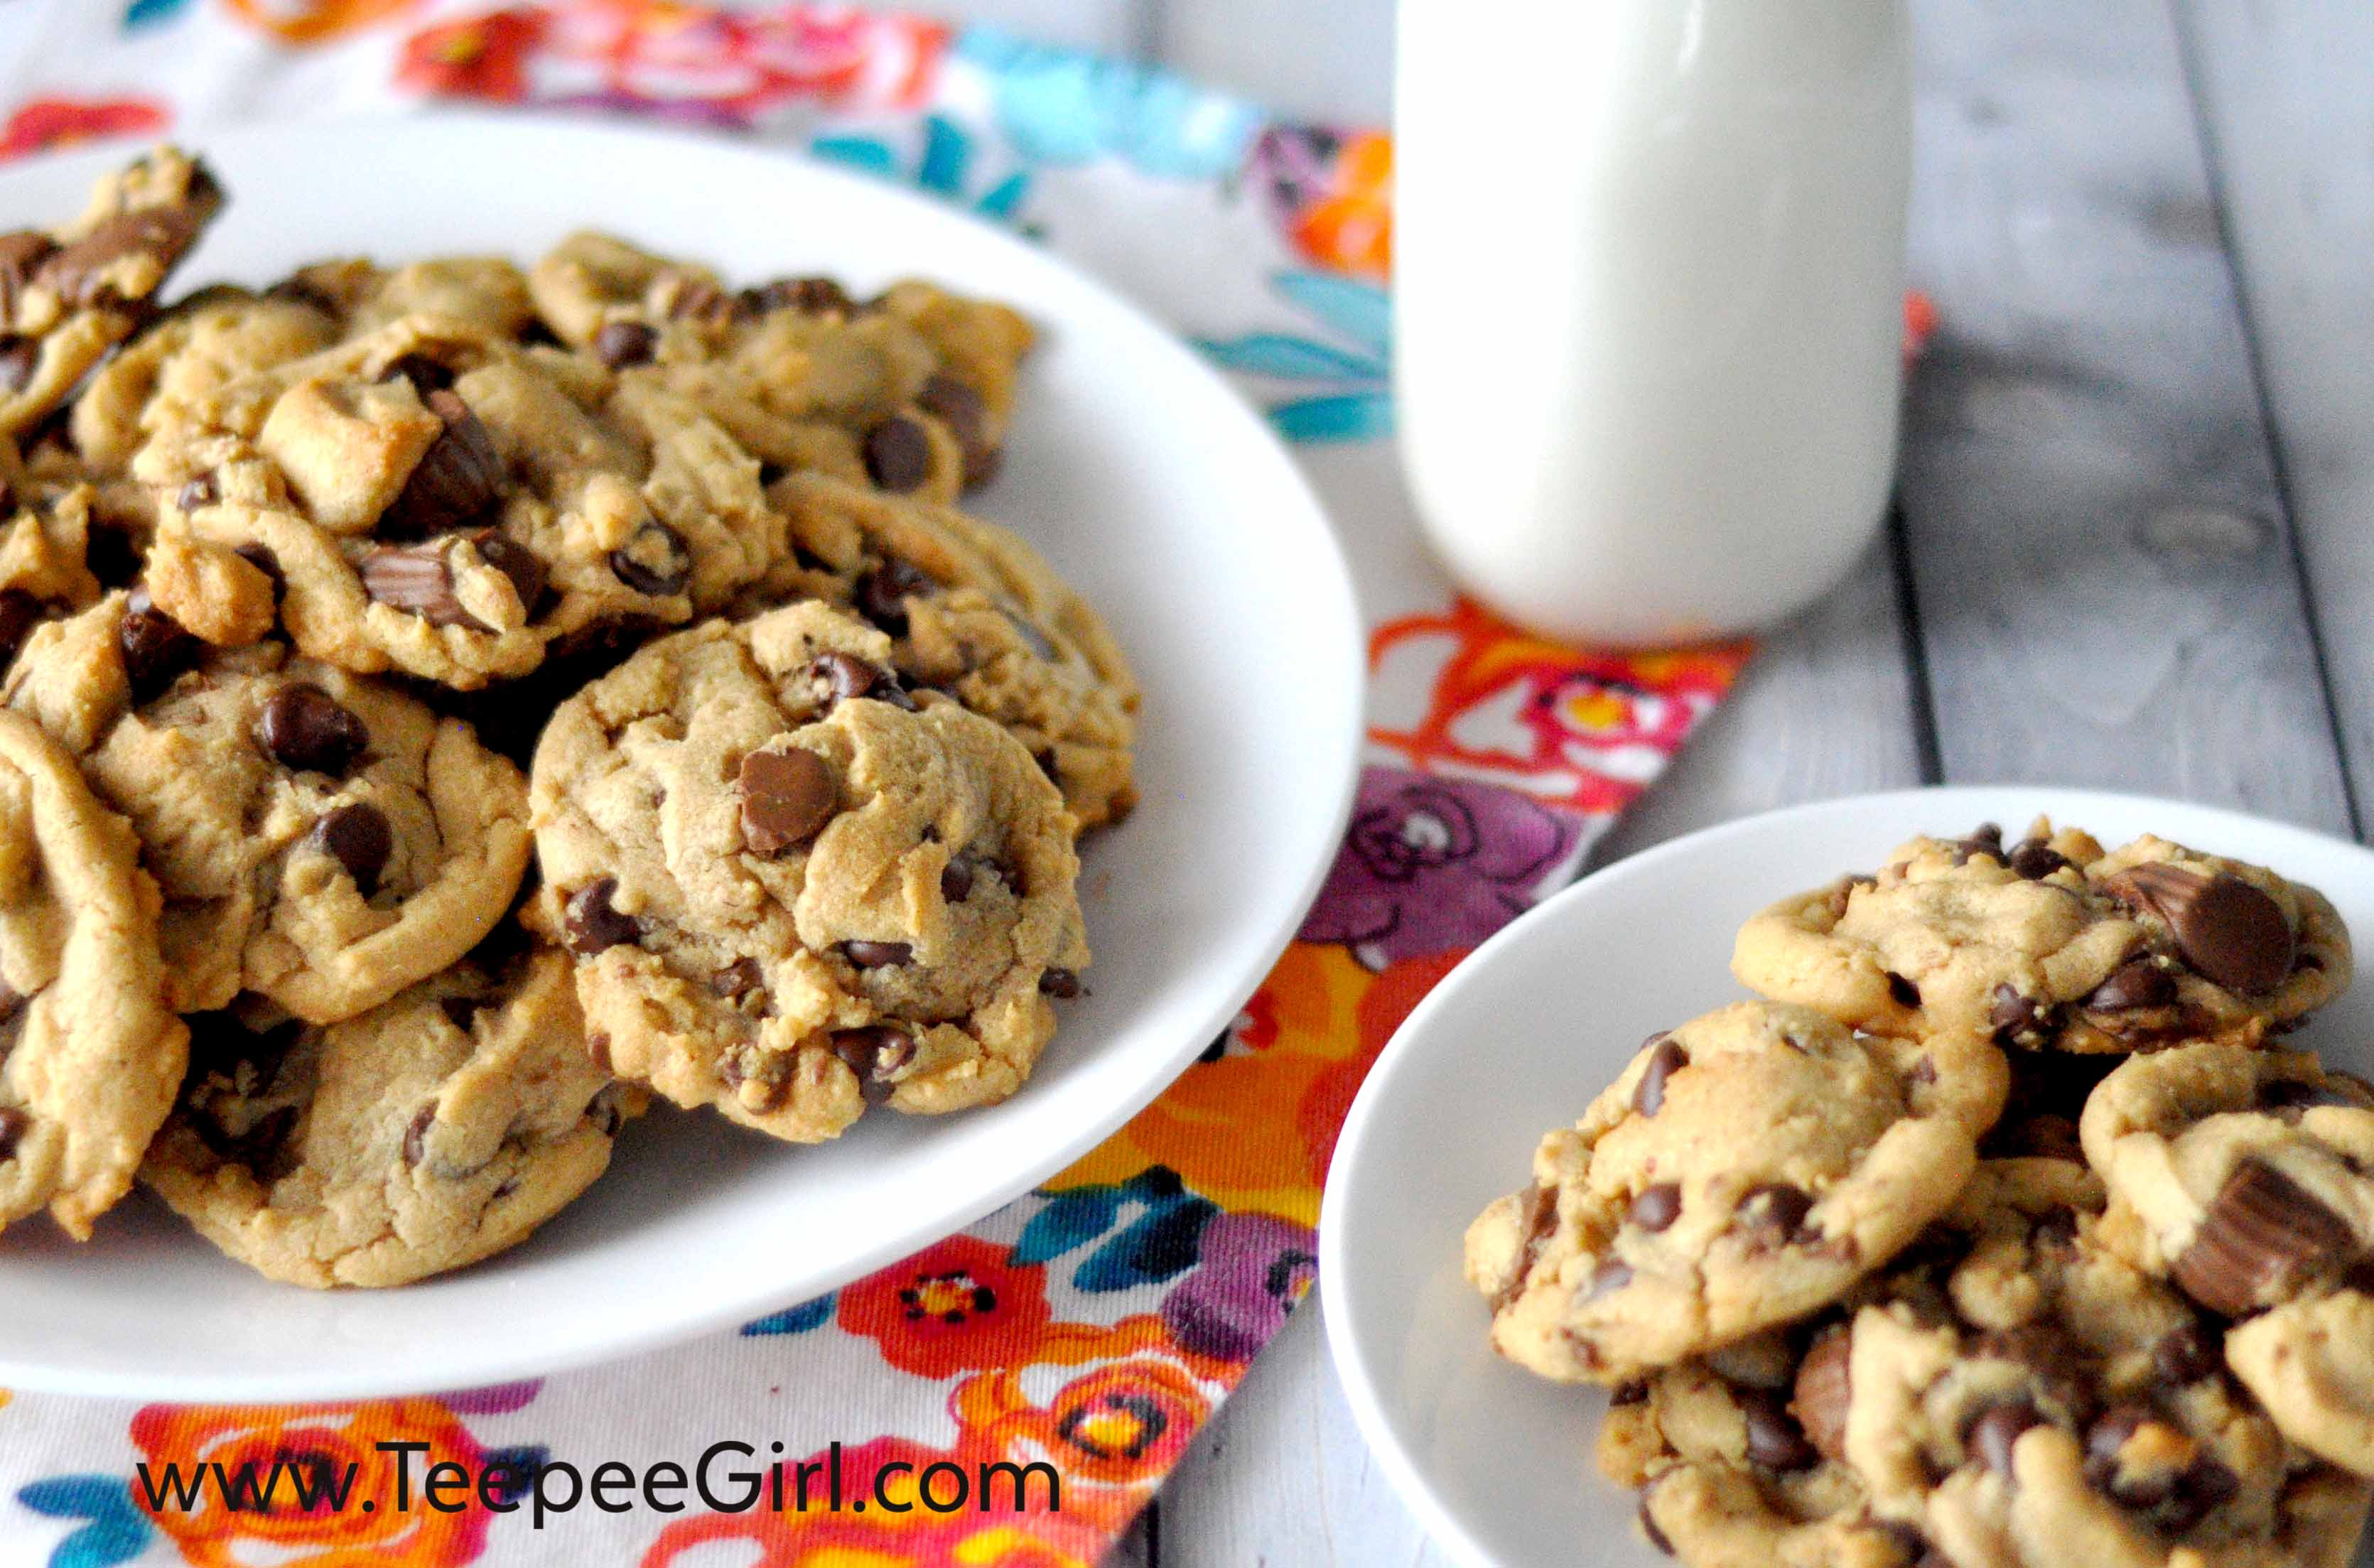 These Peanut Butter Cup Cookies are amazing! They are easy and come together quickly and taste fantastic!! Get the recipe today at www.TeepeeGirl.com.